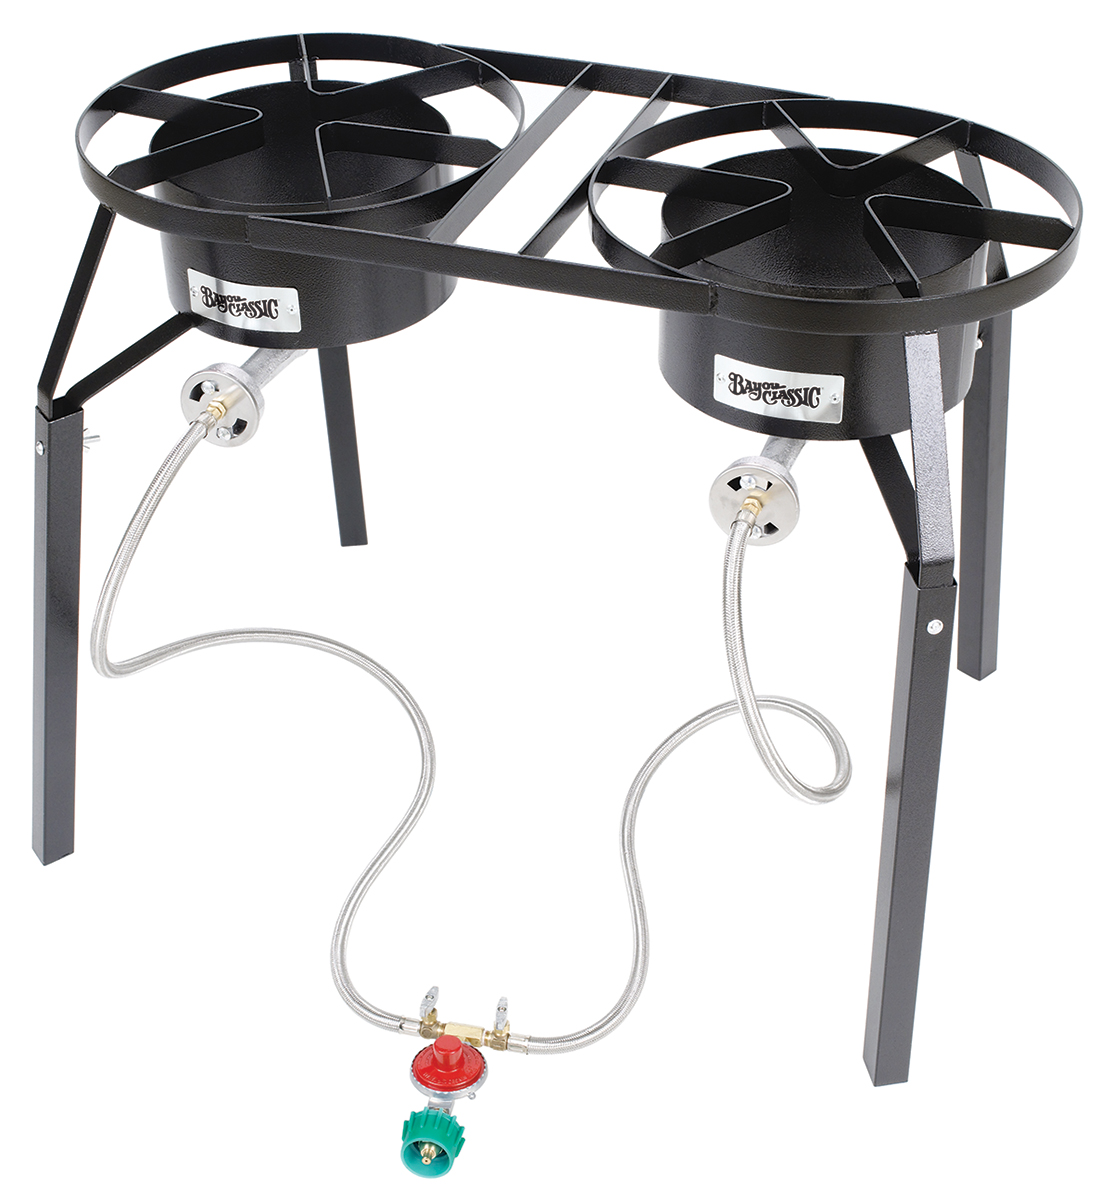 Bayou Classic DB250 Dual Burner Gas Cooker with Ext. Legs